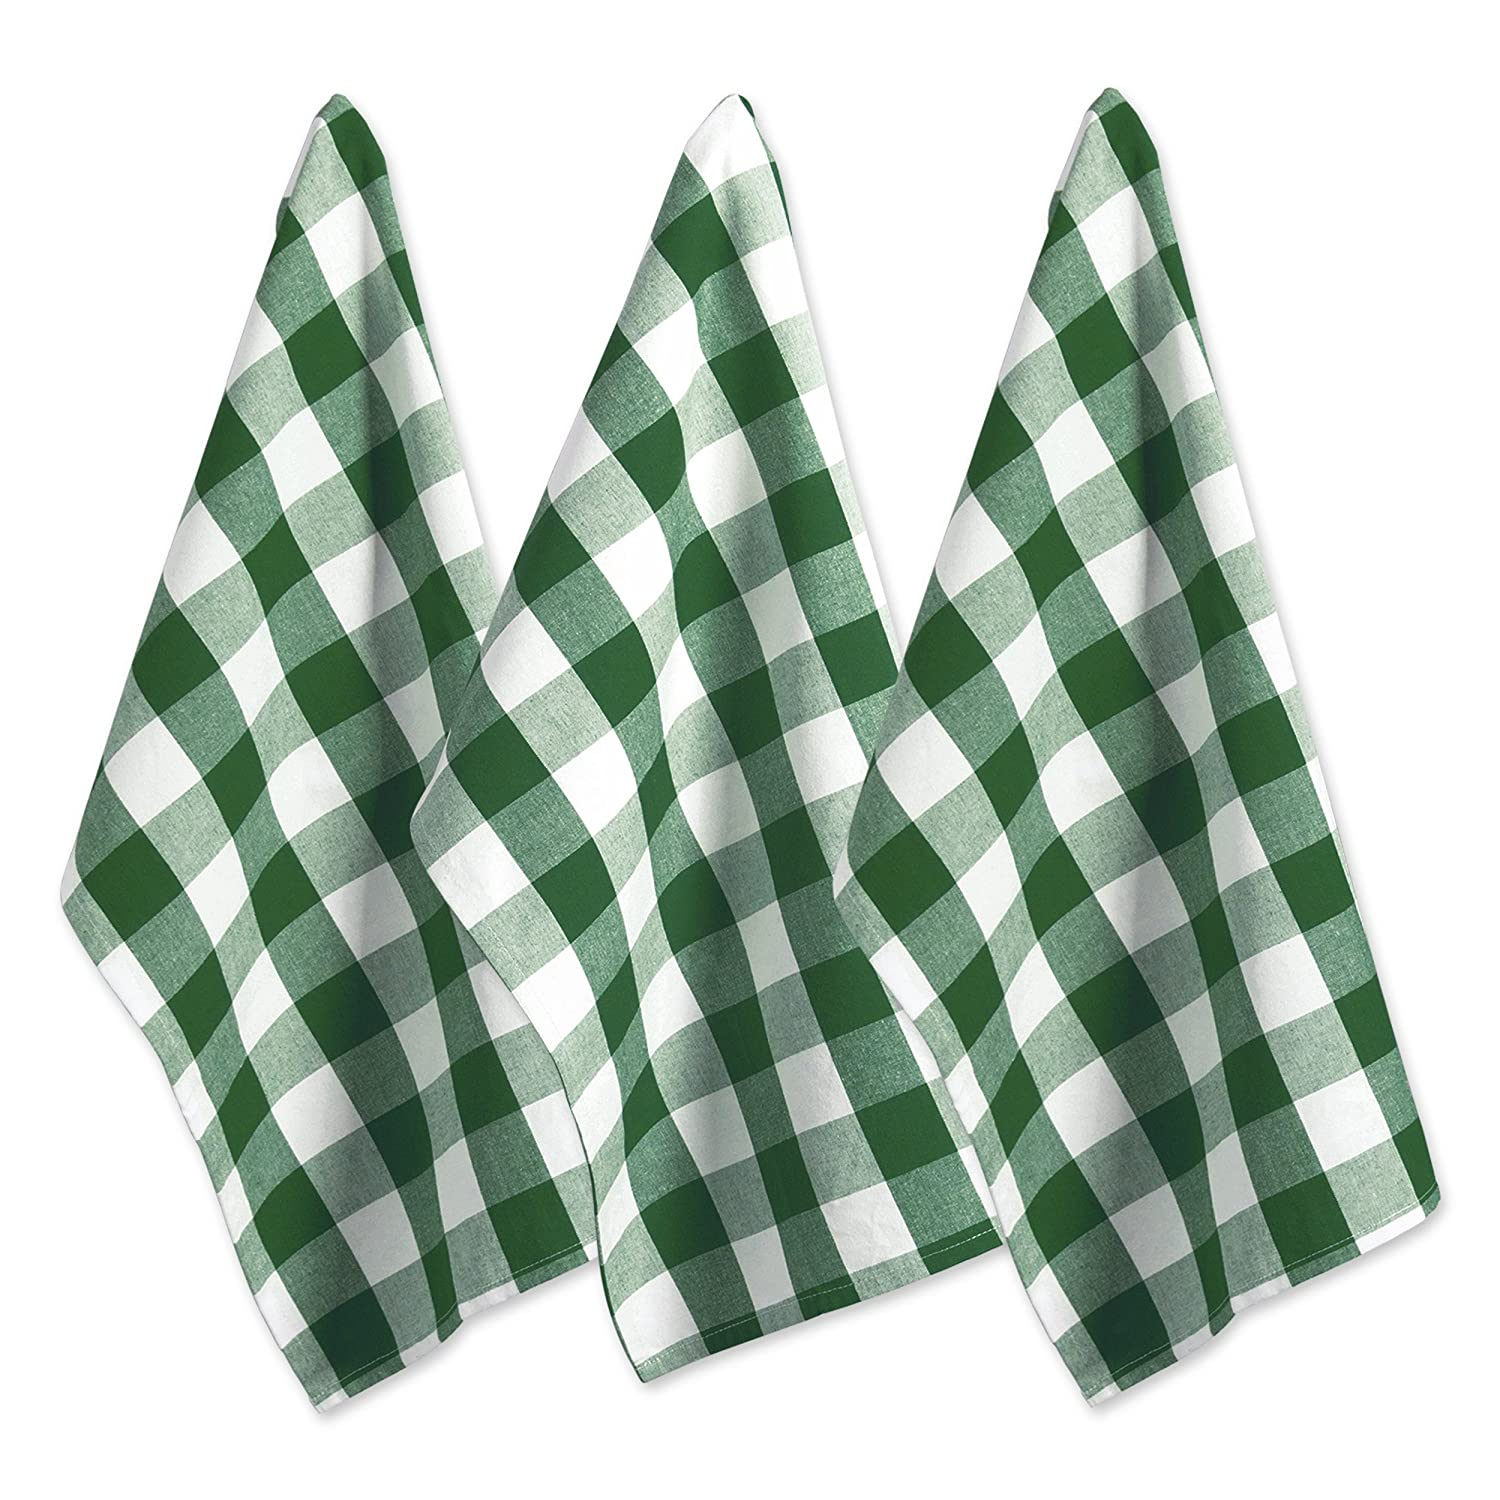 DII Oversized Kitchen Shamrock Green Buffalo Check Dishtowel (Set of 3), Green and White Buffalo Check